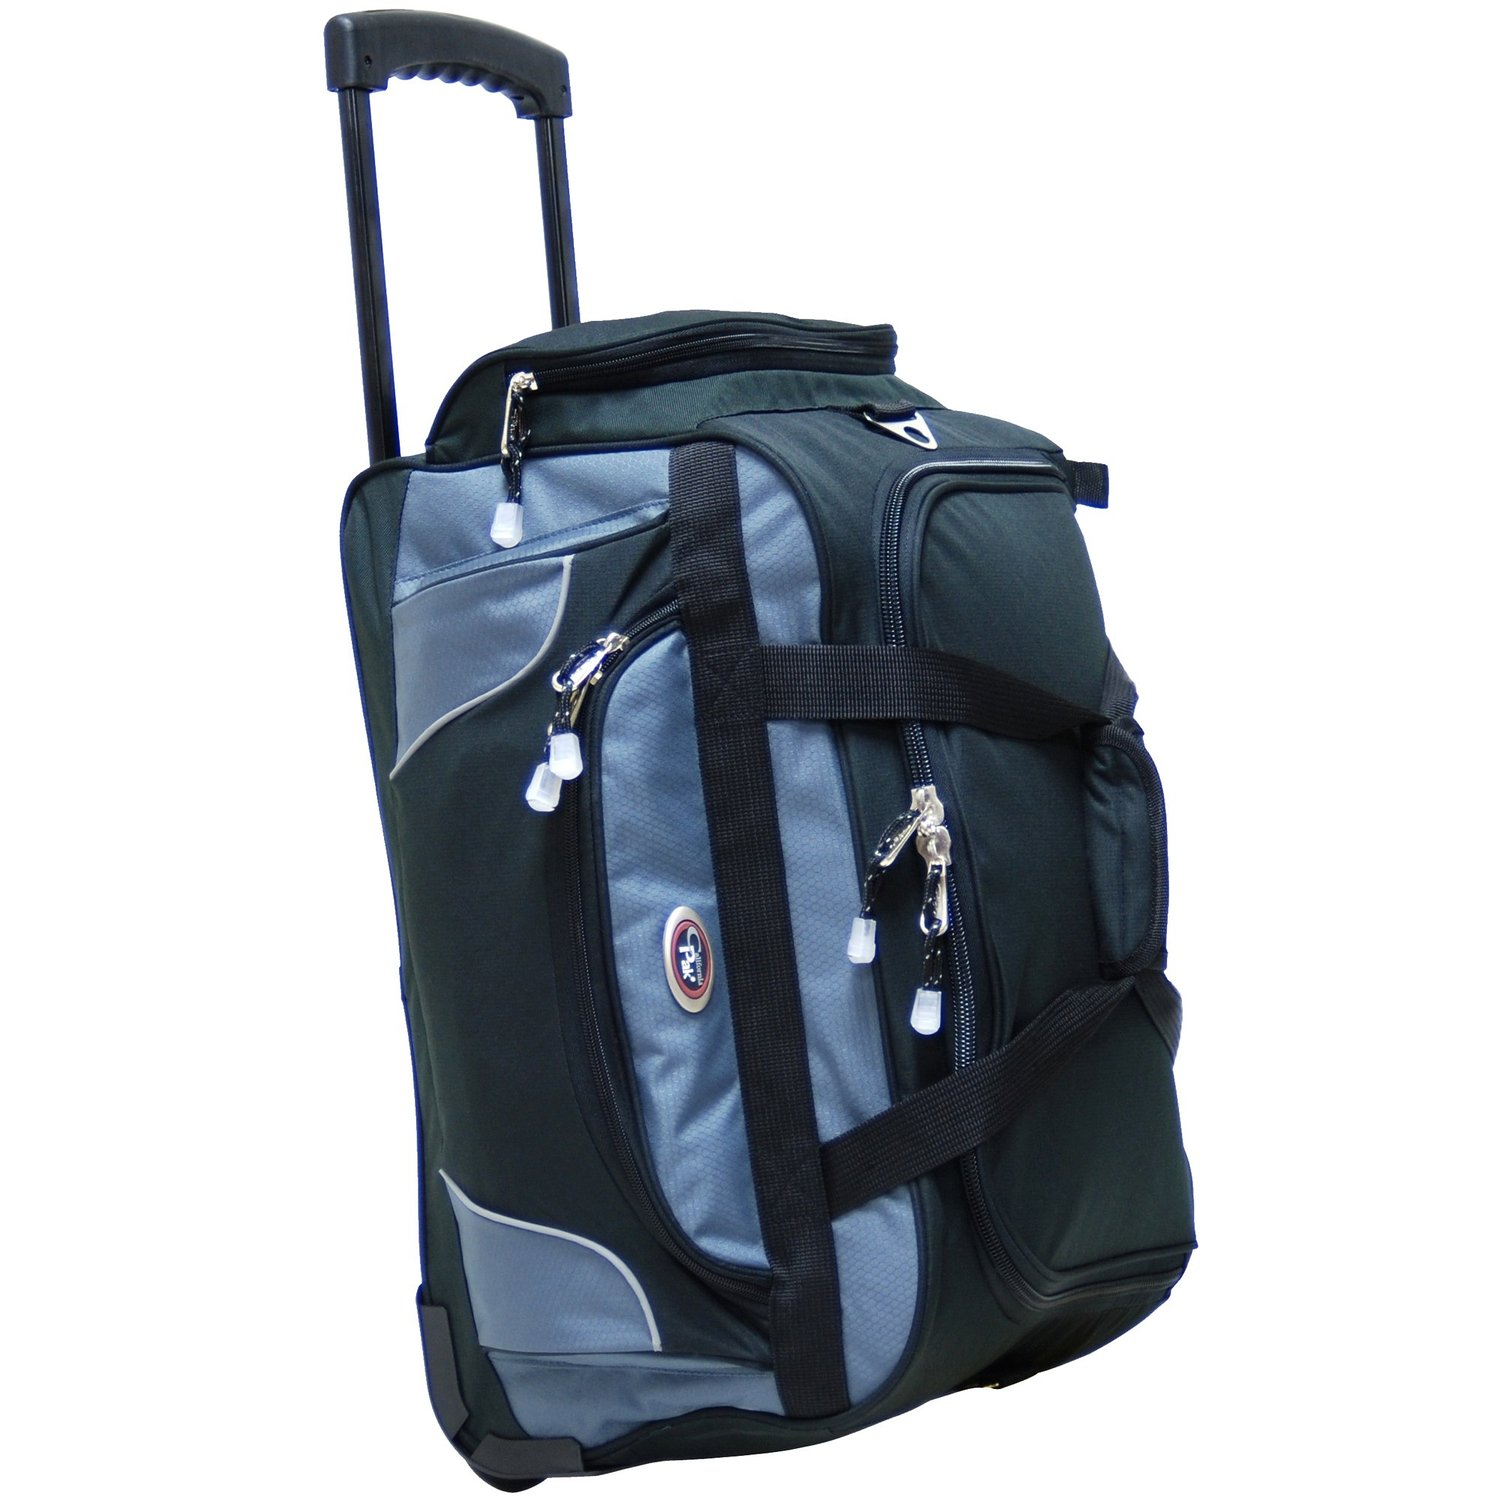 Calpak Champ 21 Inch Carry On Rolling Upright Duffel Bag Review